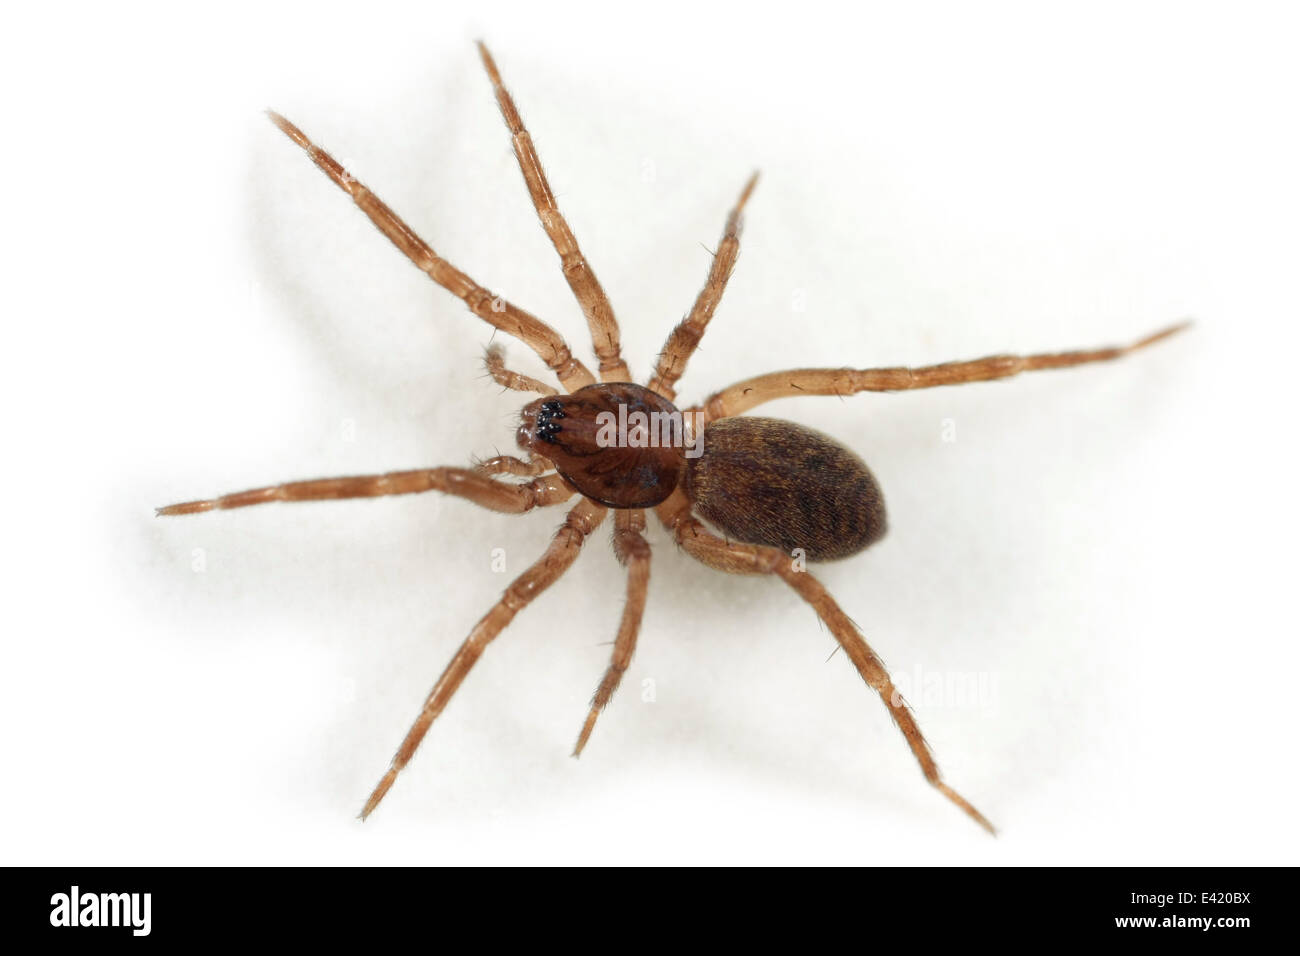 Agroeca sp spider, part of the family Liocranidae - Liocranid sac spiders. Stock Photo